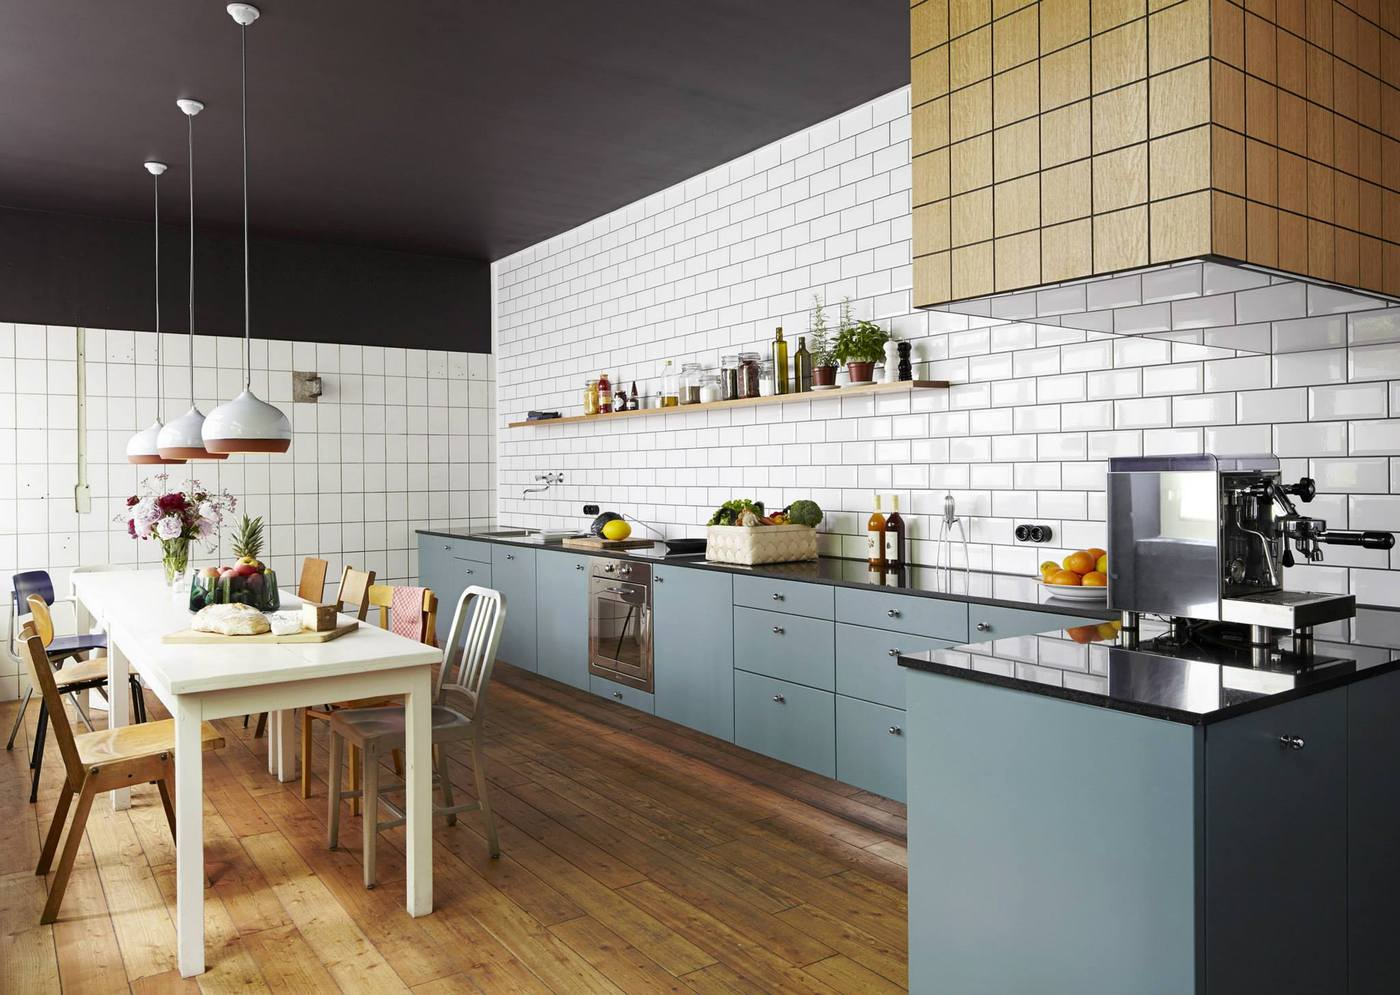 White Subway Tile Kitchen Designs Are Incredibly Universal Urban Vs